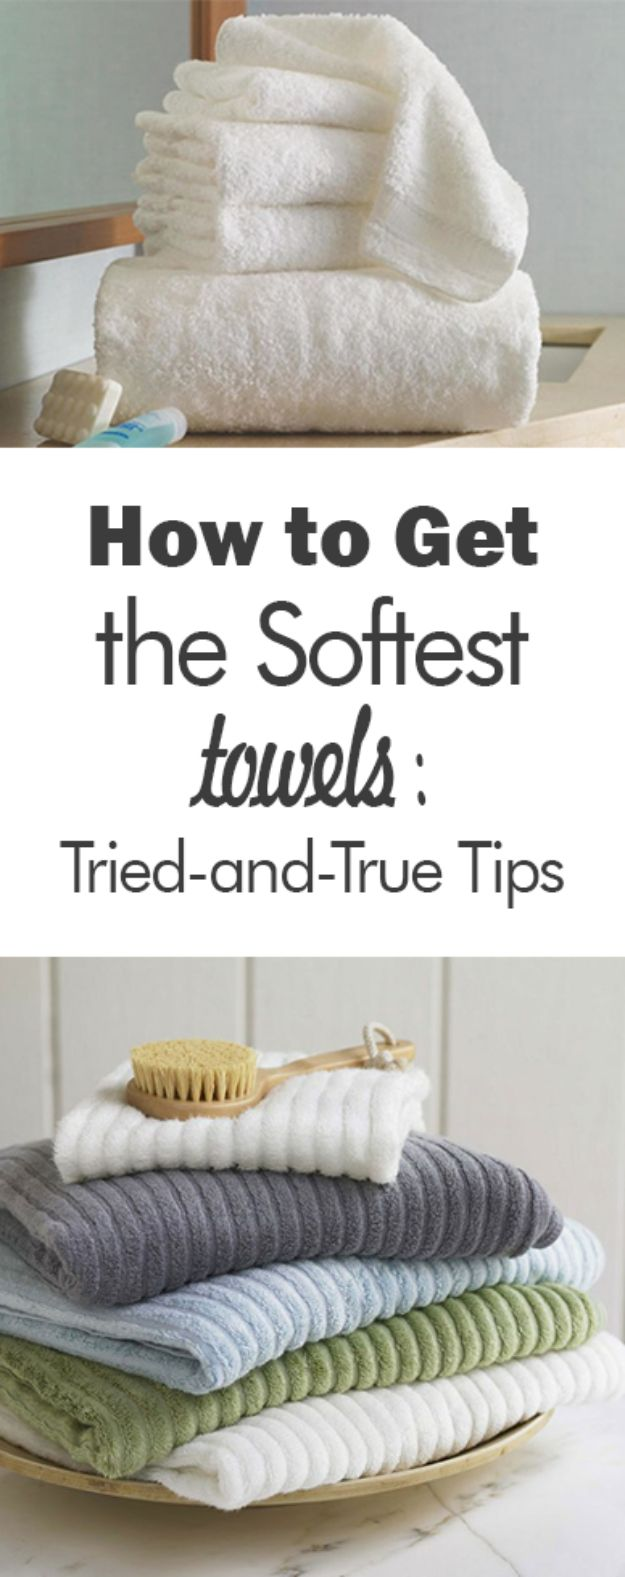 Laundry Hacks - Get the Softest Towels - Cool Tips for Busy Moms and Laundry Lifehacks - Laundry Room Organizing Ideas, Storage and Makeover - Folding, Drying, Cleaning and Stain Removal Tips for Clothes - How to Remove Stains, Paint, Ink and Smells - Whitening Tricks and Solutions - DIY Products and Recipes for Clothing Soaps